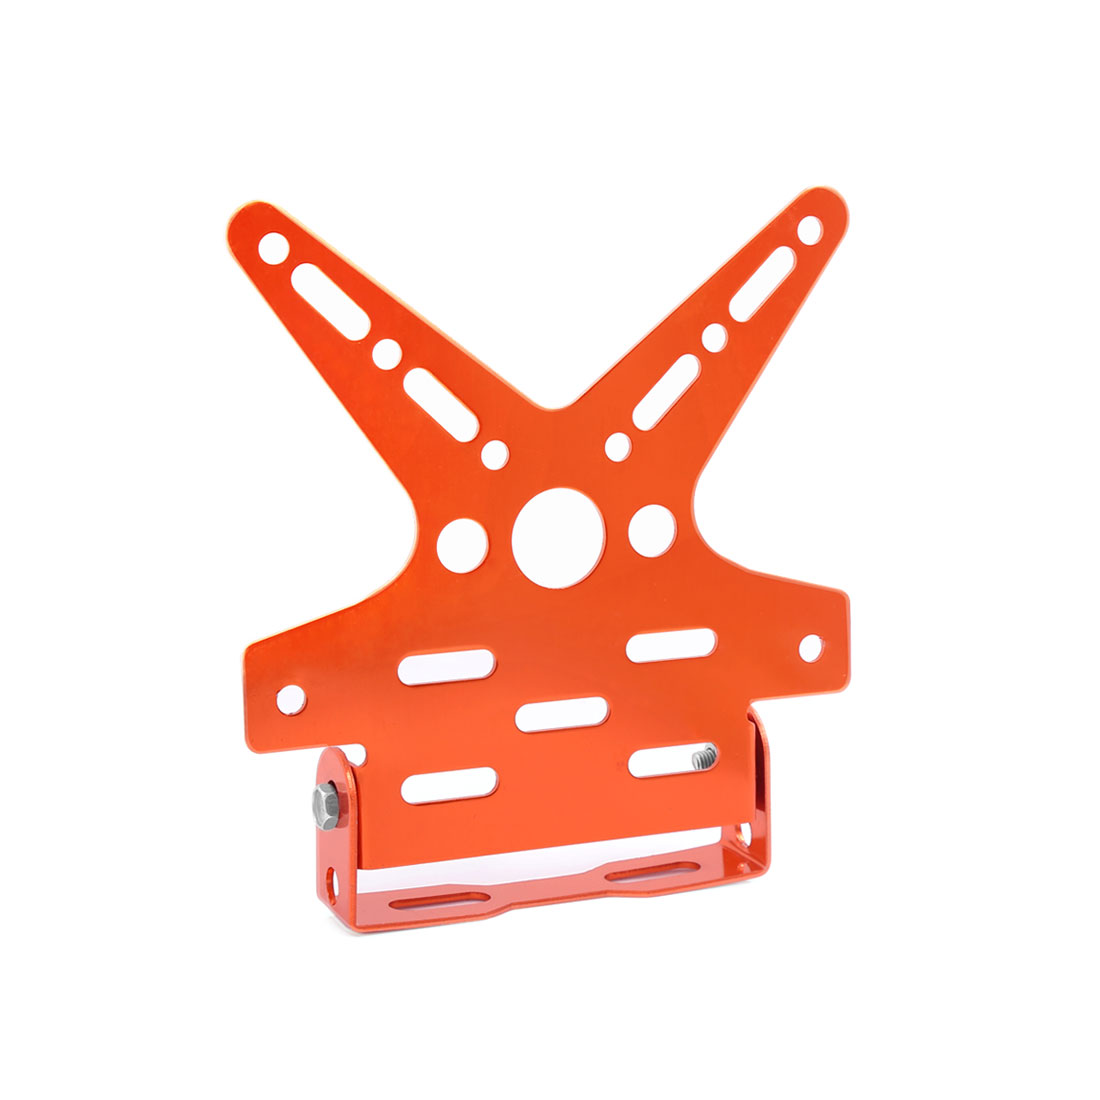 Unique Bargains Motorbike Aluminum Alloy Swallow Tail Shaped License Plate Bracket Holder Orange